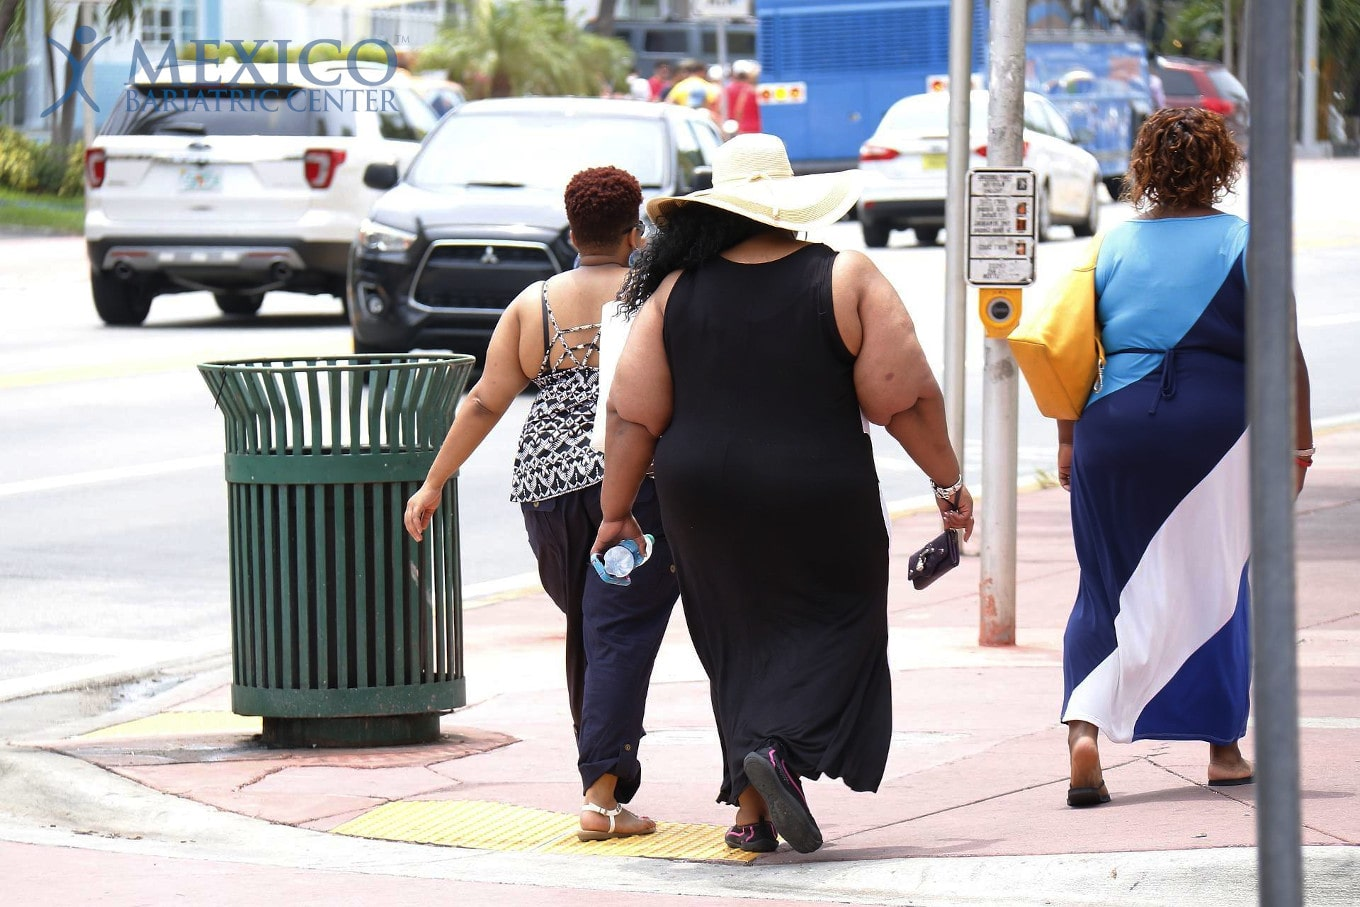 Obesity is a Major Risk Factor for Severe Coronavirus (COVID-19) Infections